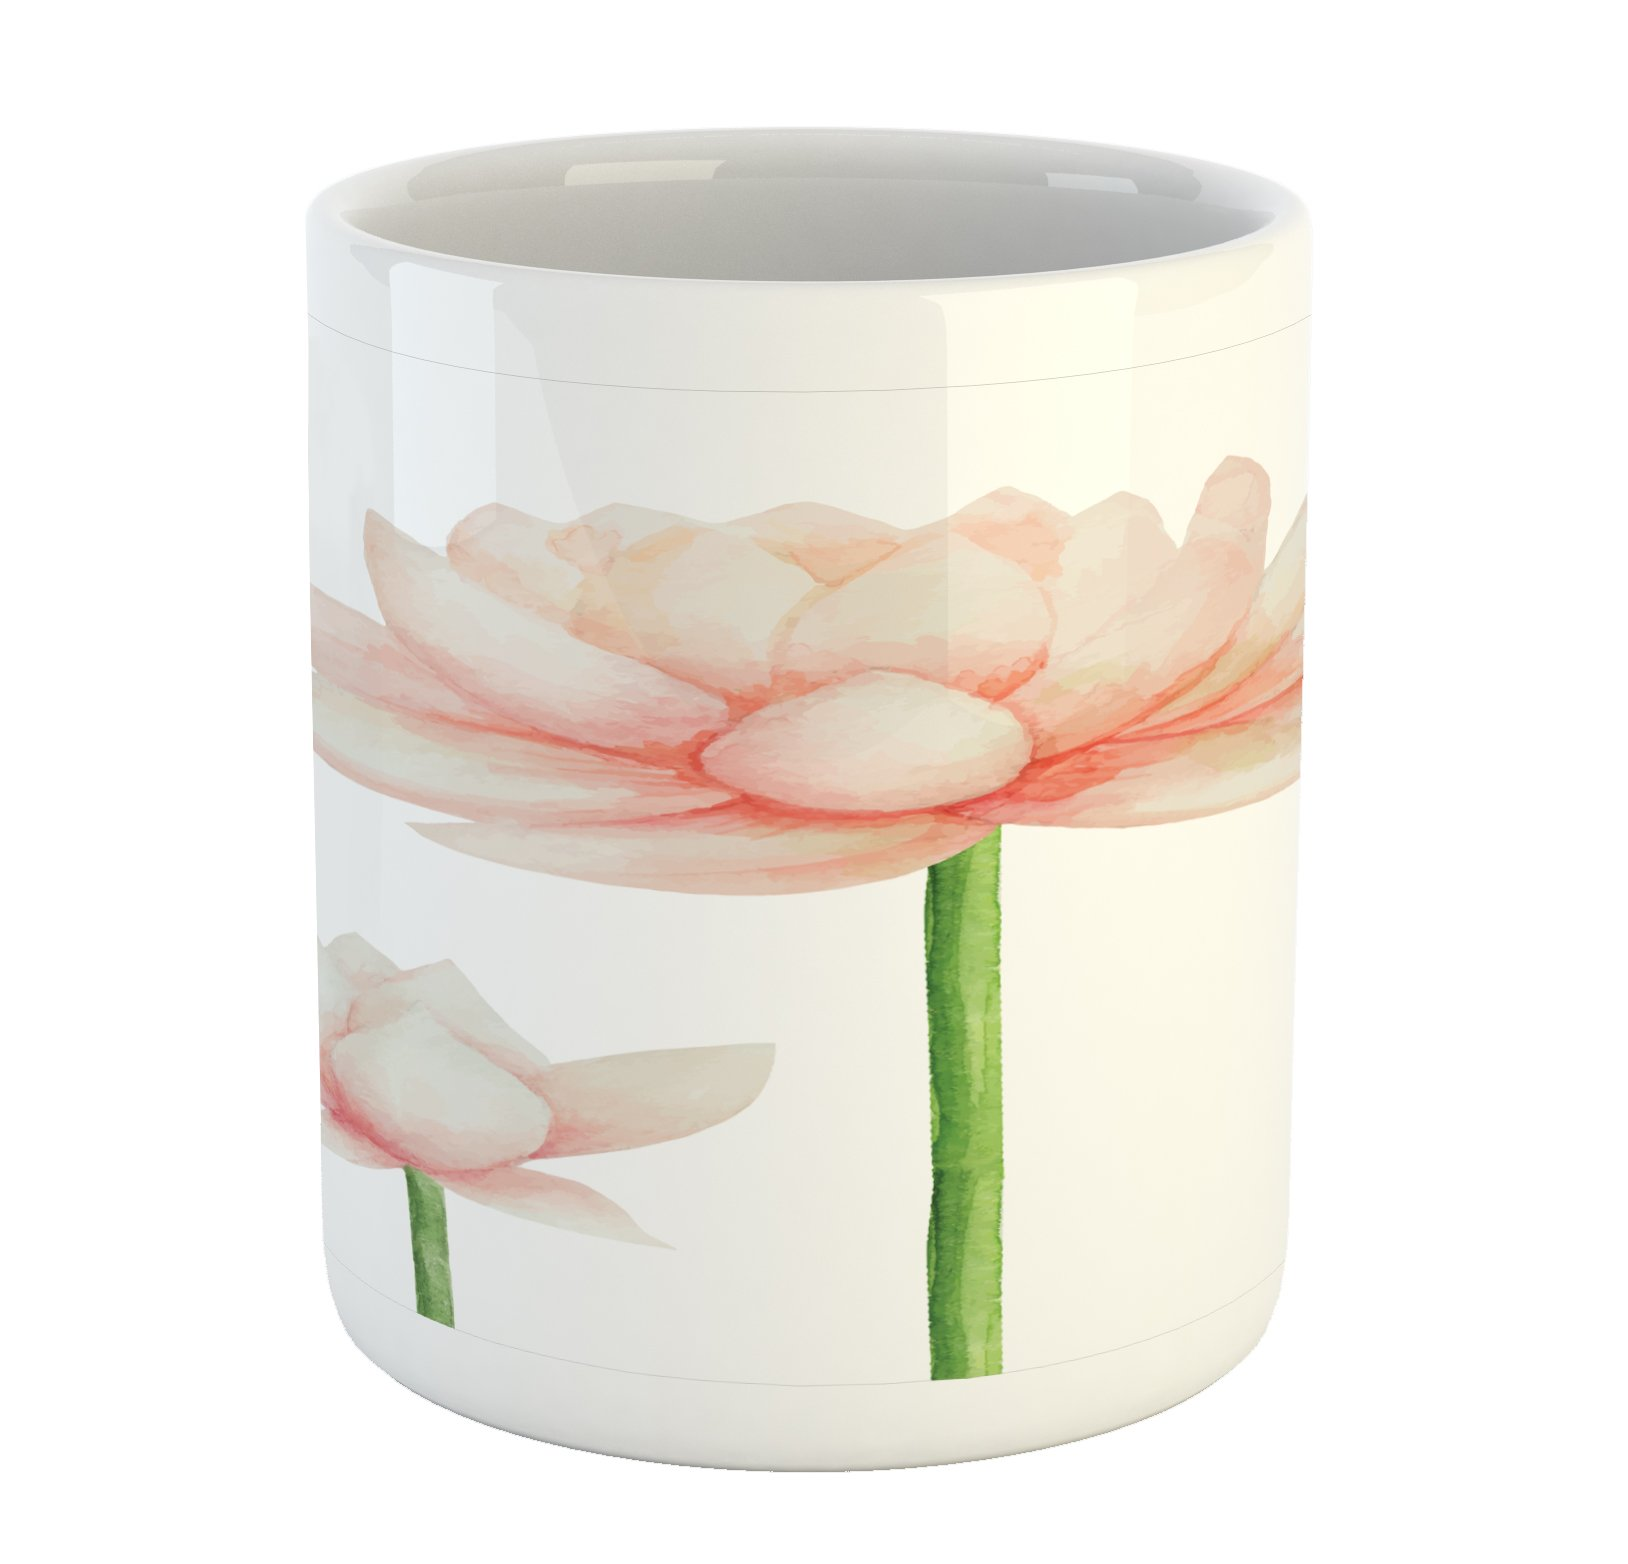 Ambesonne Yoga Mug, Pastel Colored Blooming Lotus Flower Romantic Fresh Garden Plant Spa Theme, Printed Ceramic Coffee Mug Water Tea Drinks Cup, Peach Green and White